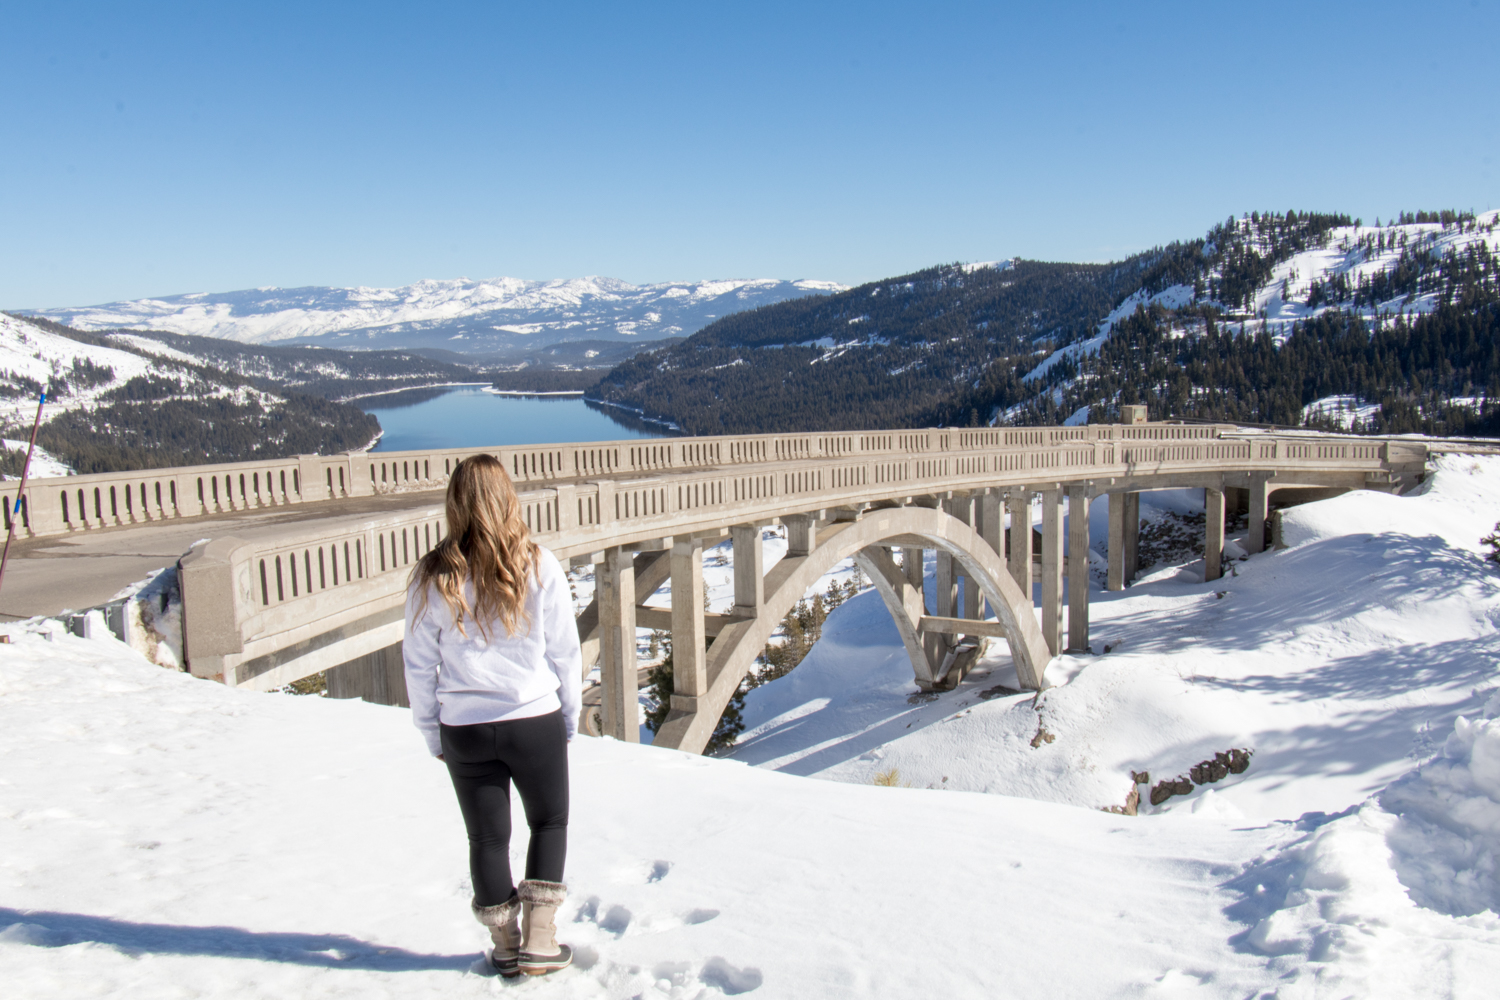 Donner Lake | Truckee | Donner Lake Overlook | Snowy Weekend in Lake Tahoe | Catherine Chicotka